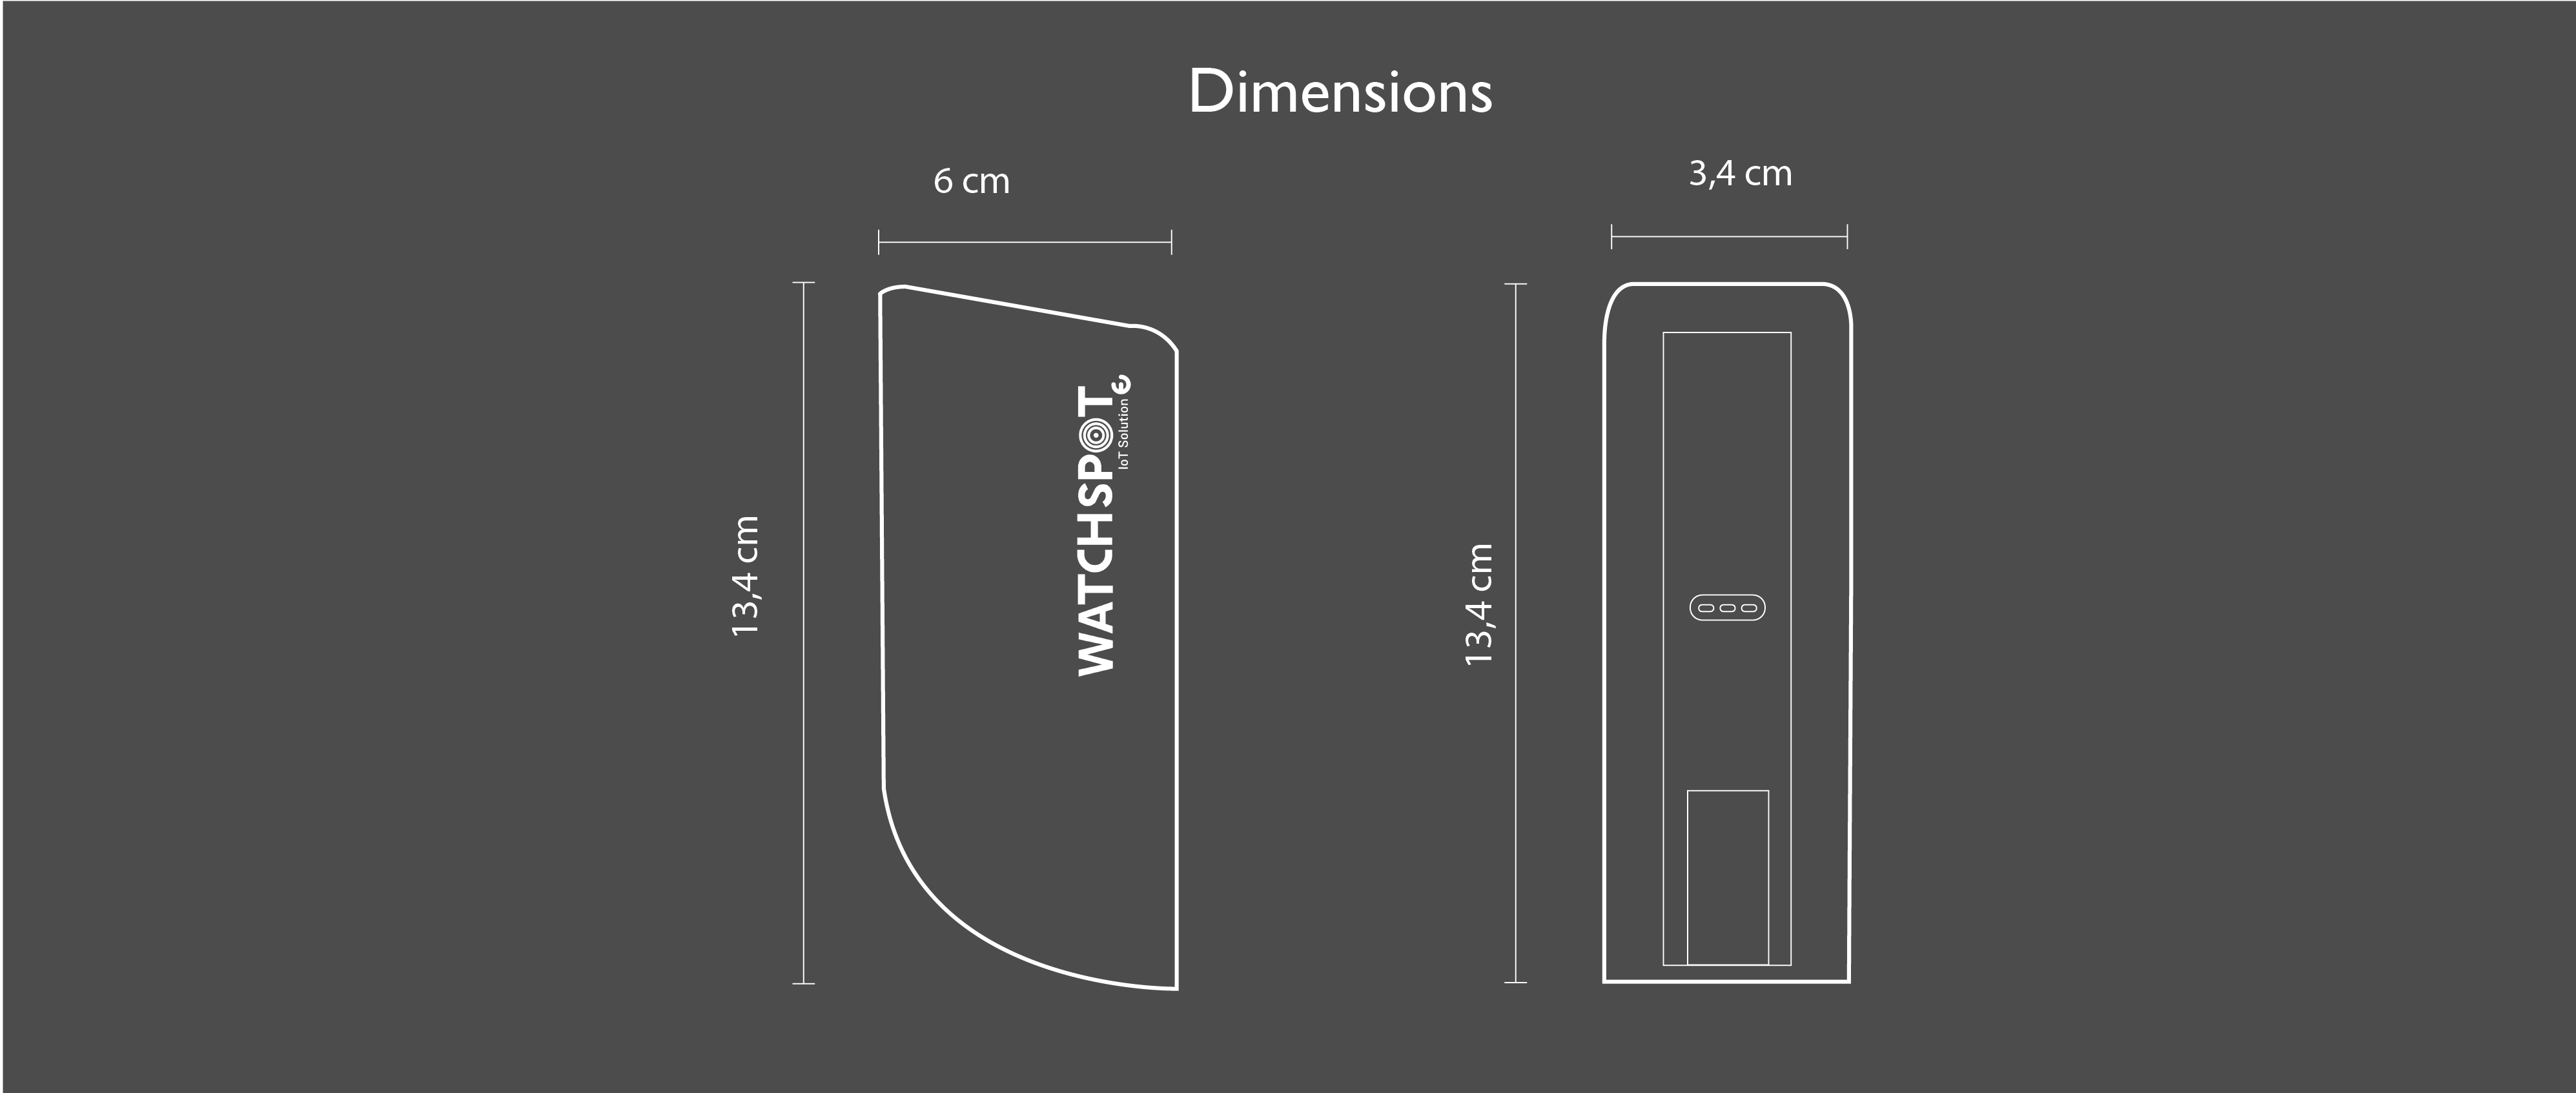 watchspot dimensions